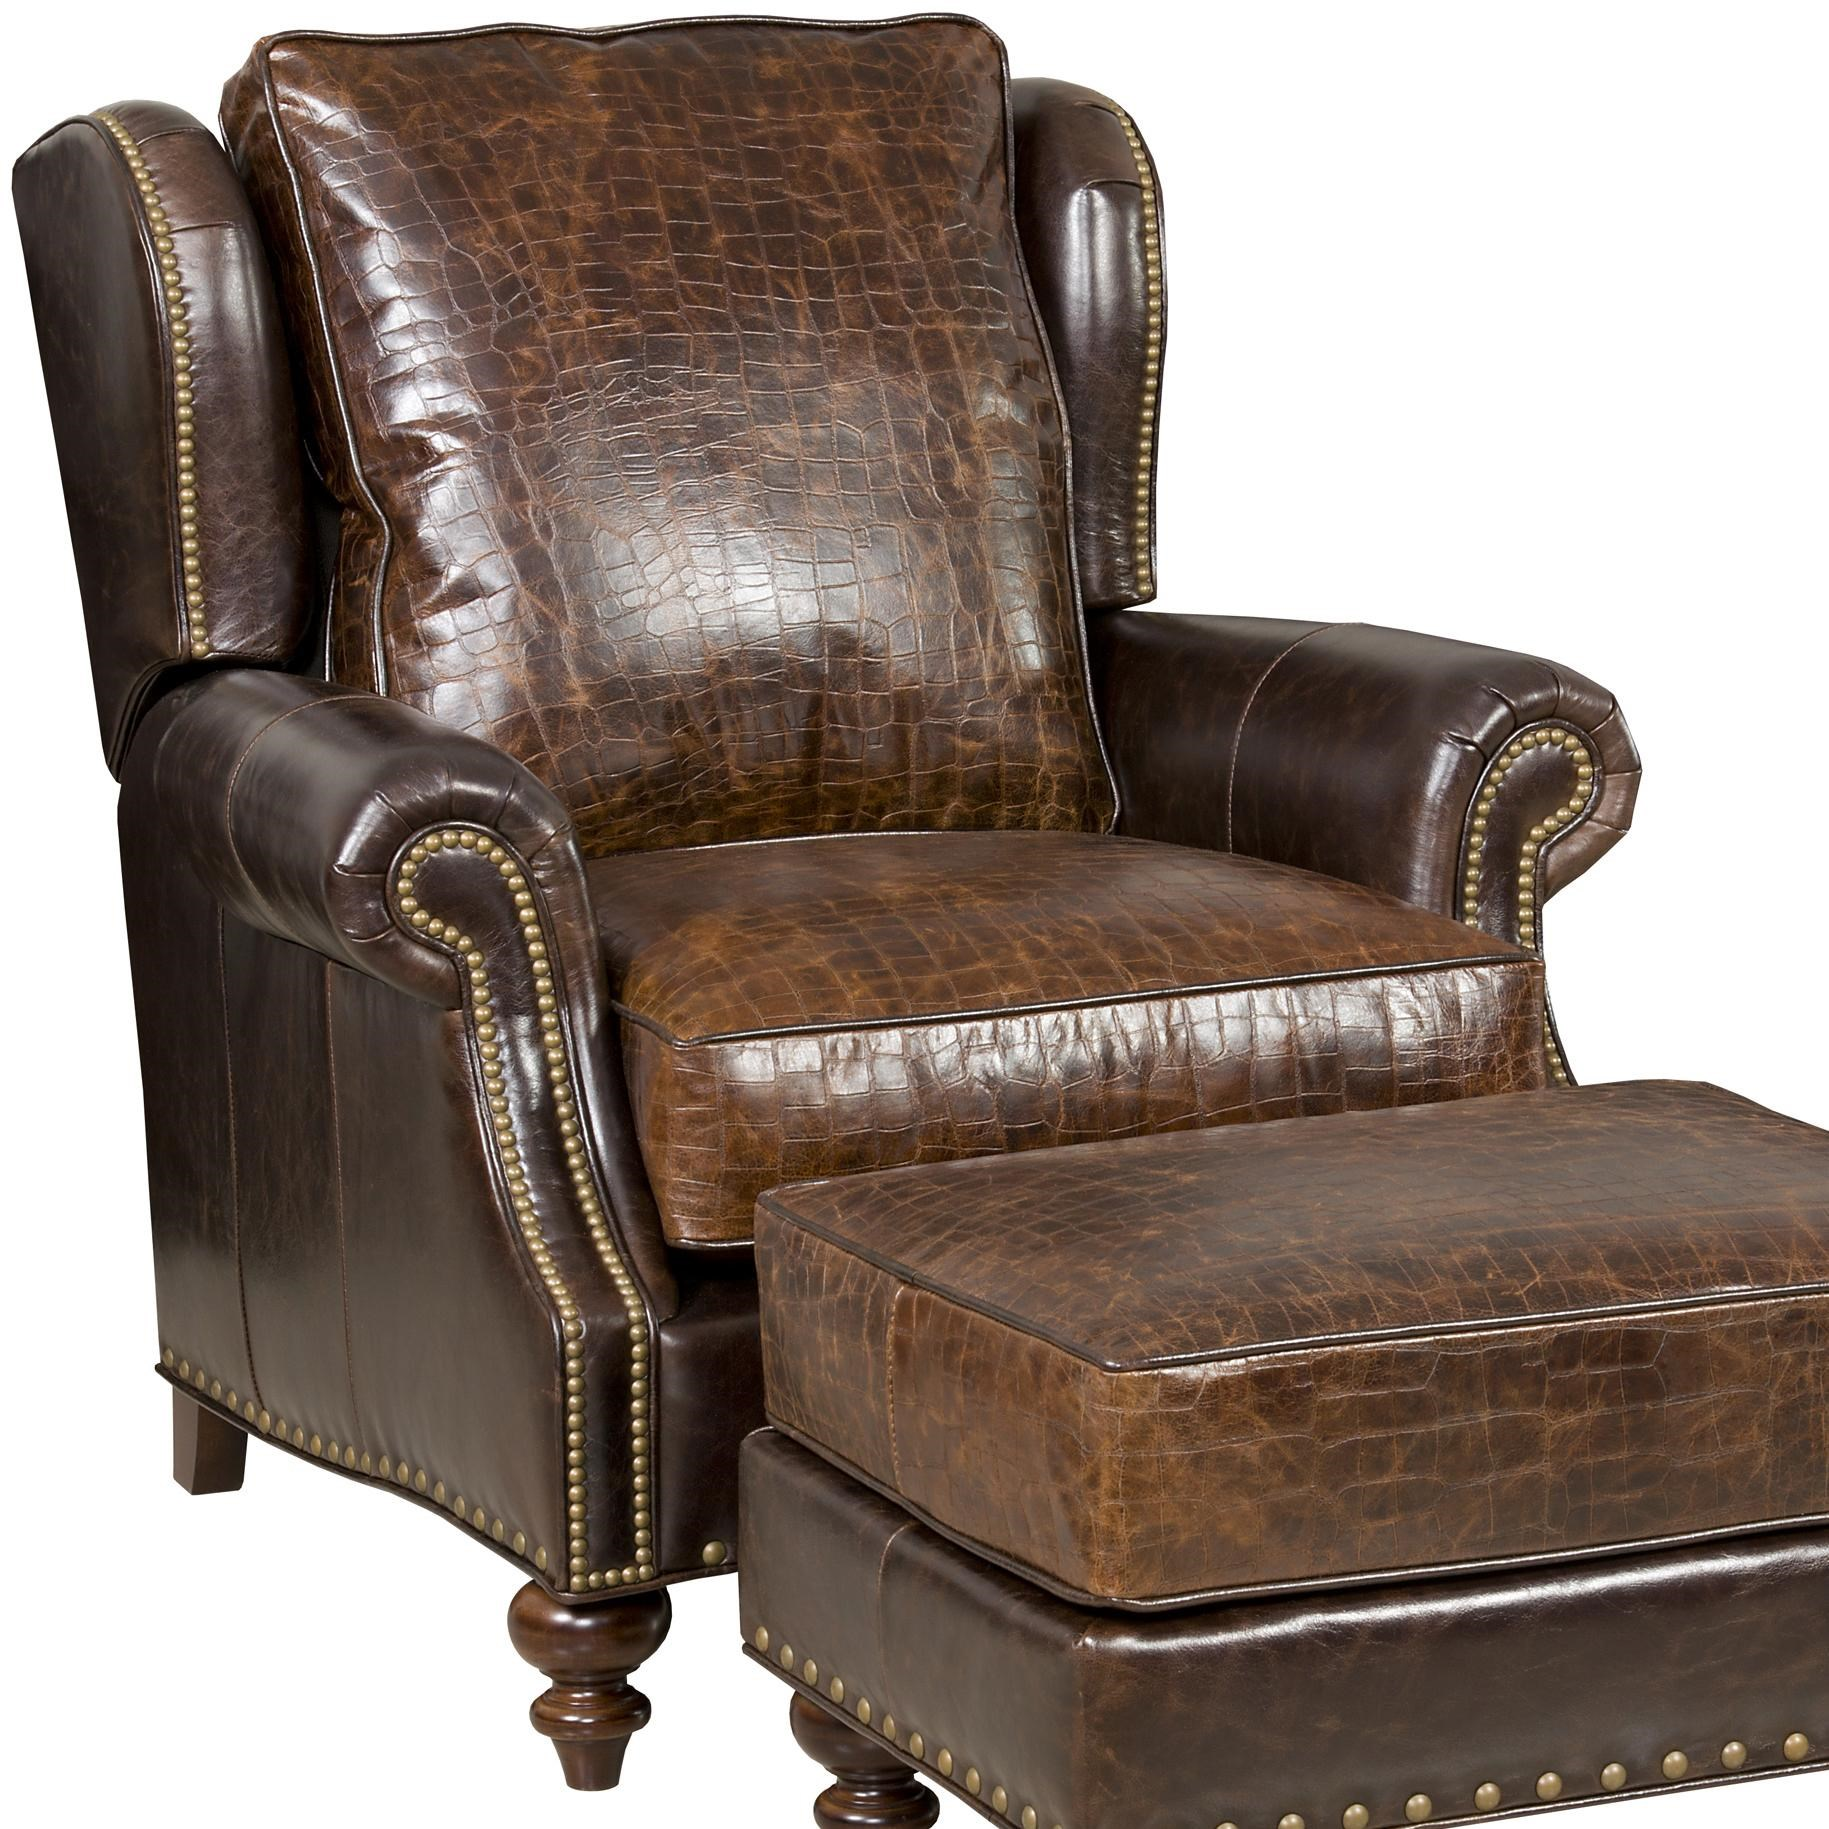 traditional wingback chairs. Bradington Young BosworthVari-tilt Chair Traditional Wingback Chairs